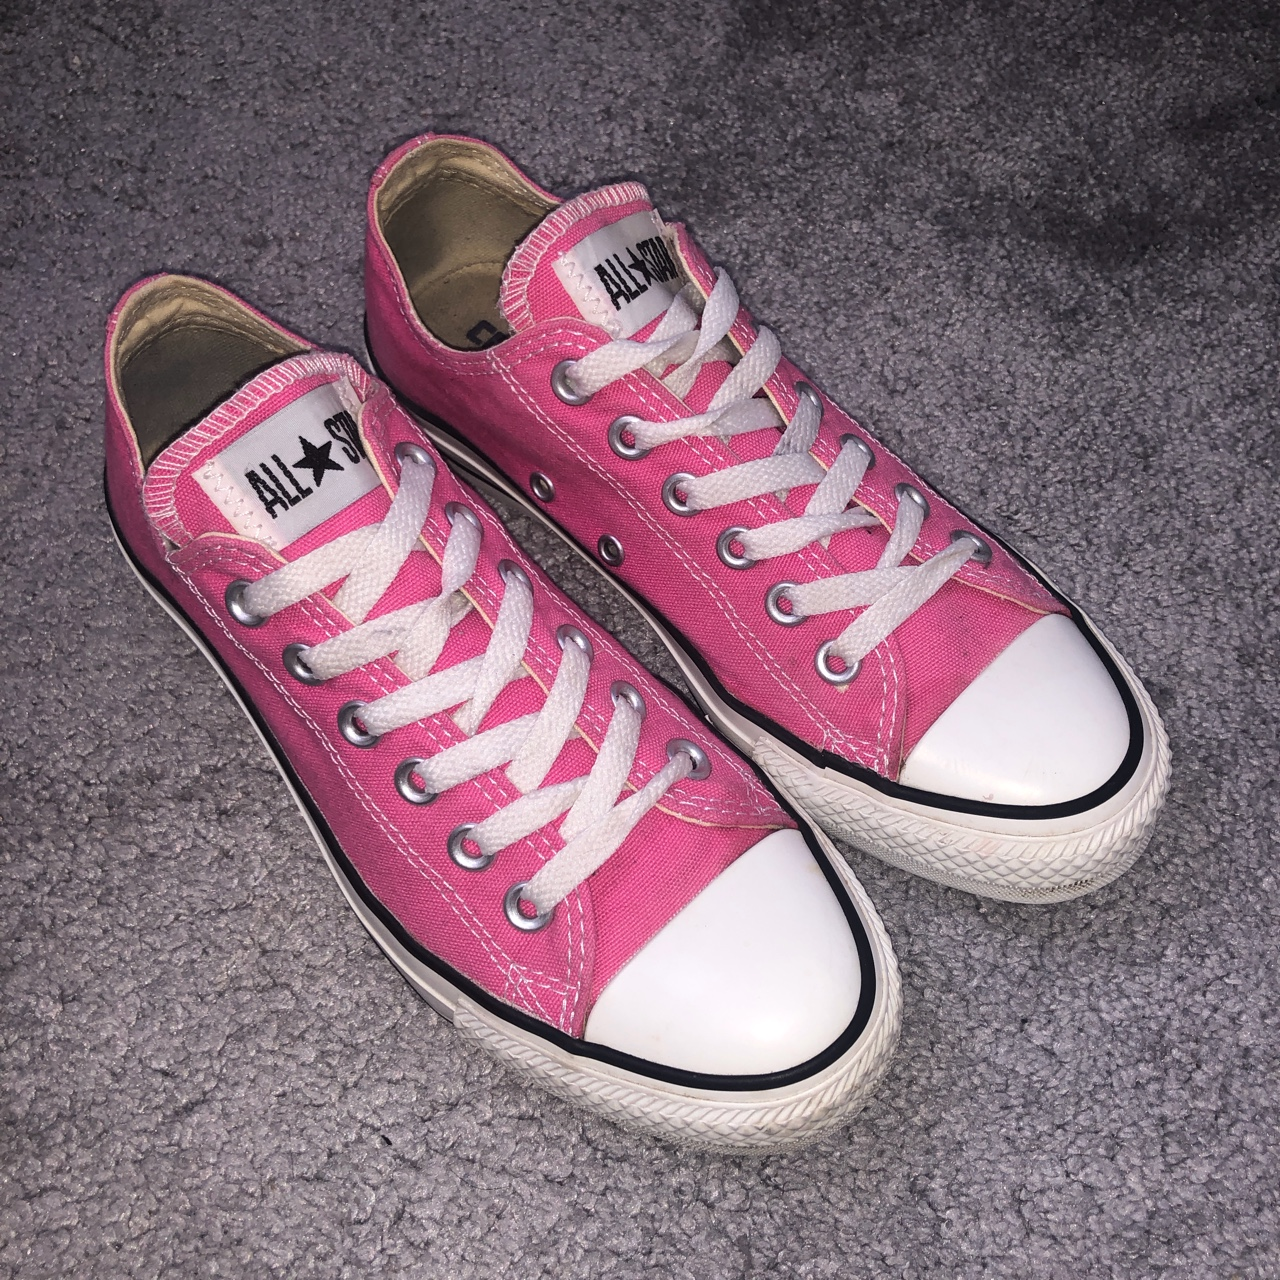 Pink converse trainers, size 5. Bought